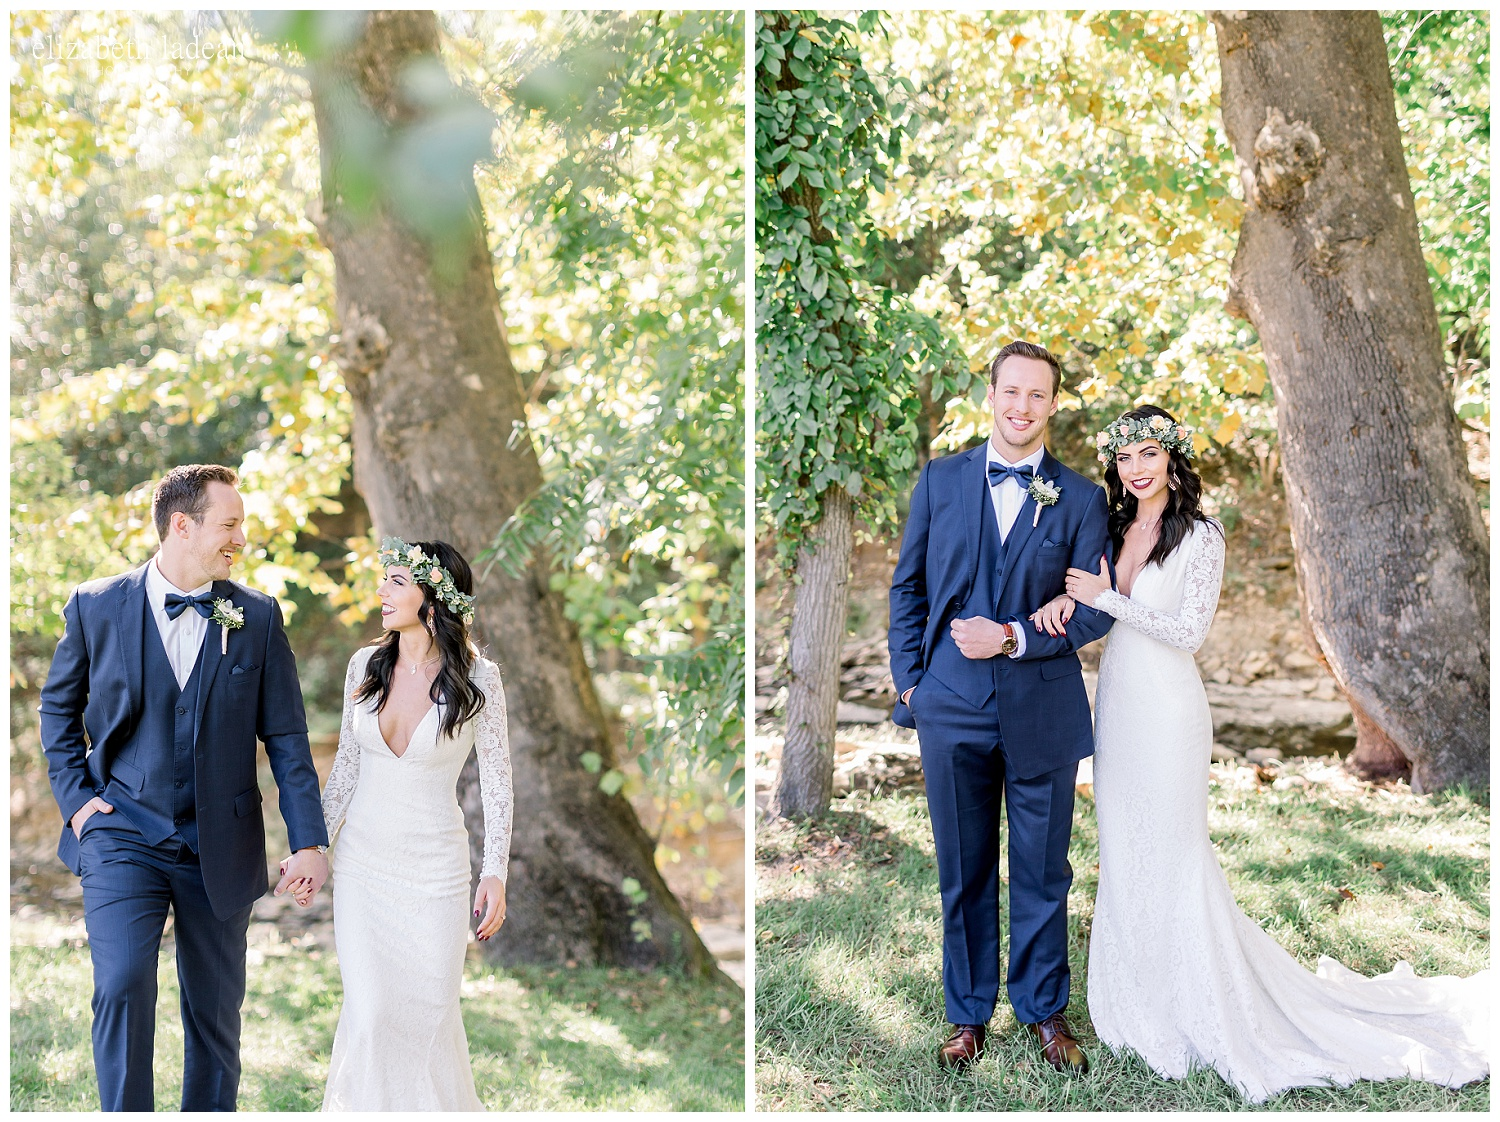 Willow-Creek-Blush-and-Blues-Outdoor-Wedding-Photography-S+Z2018-elizabeth-ladean-photography-photo_0541.jpg